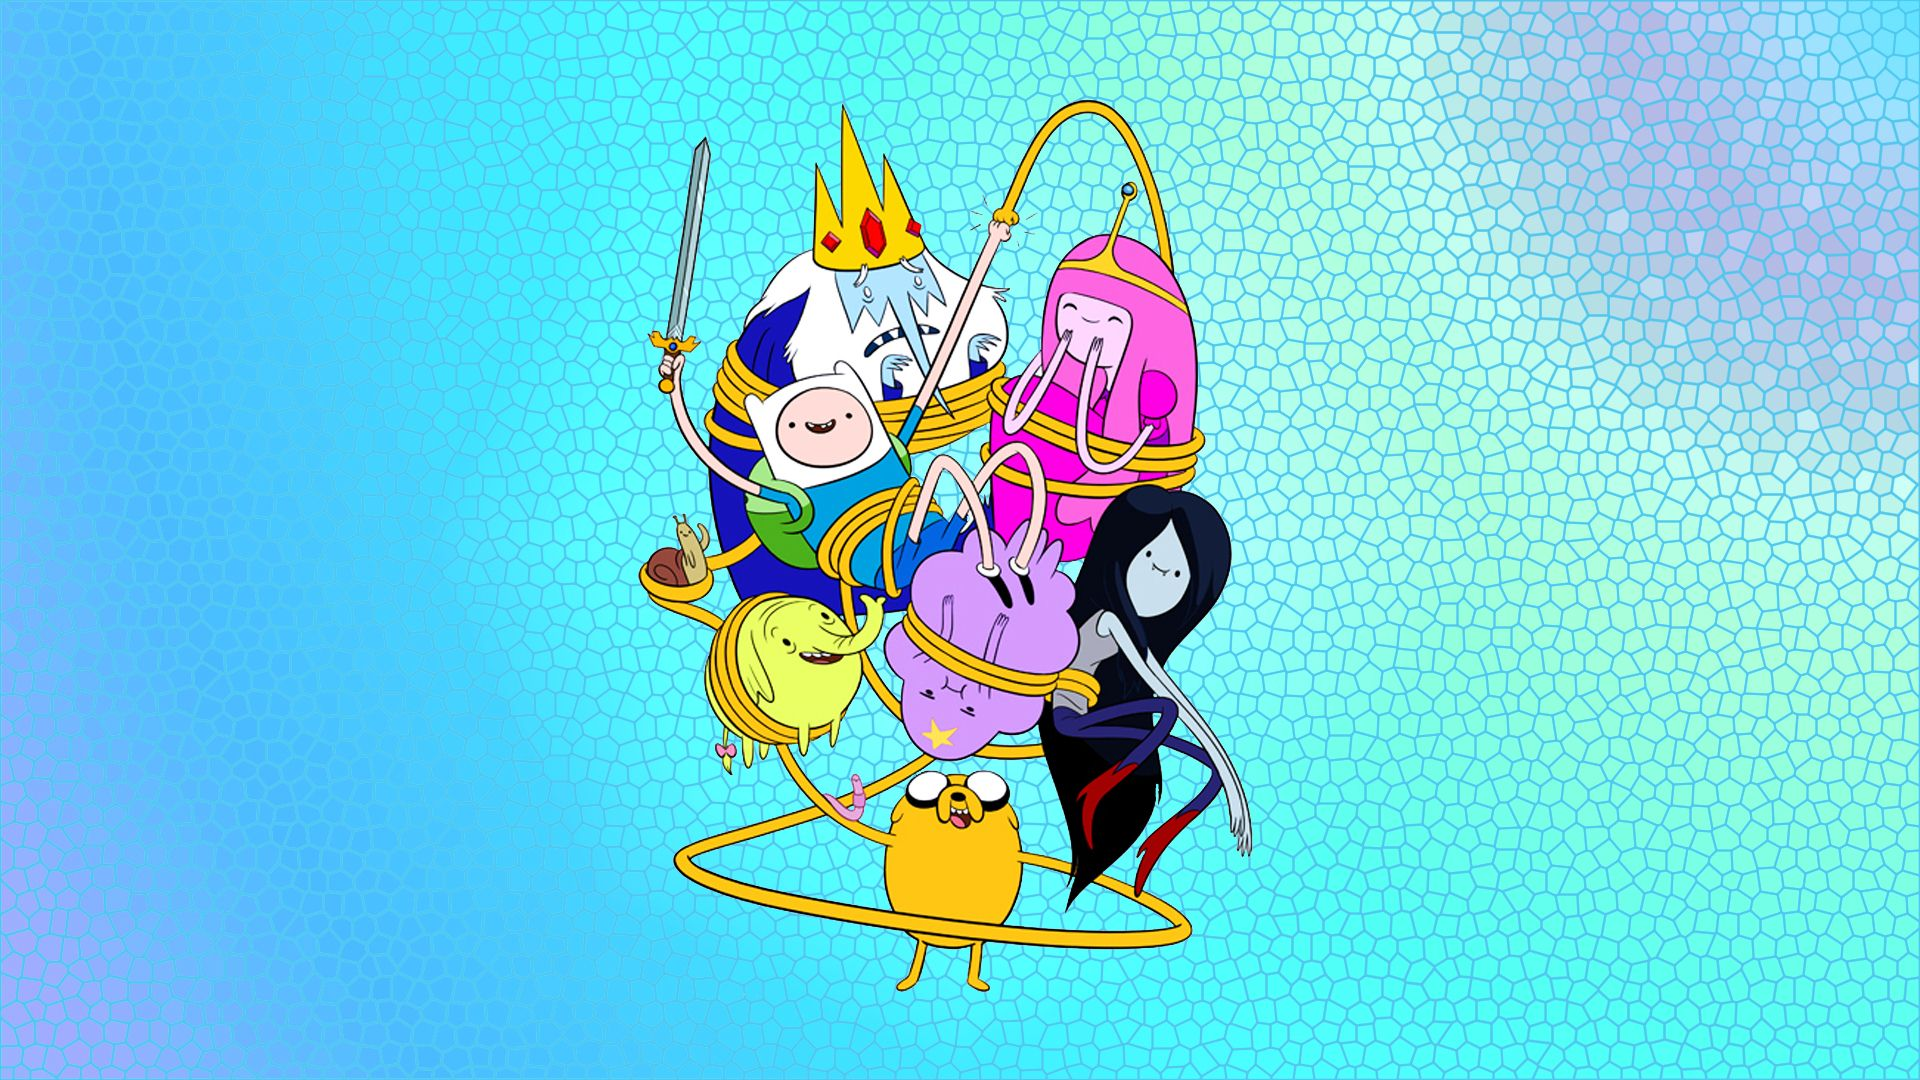 adventure time wallpapers download - photo #36